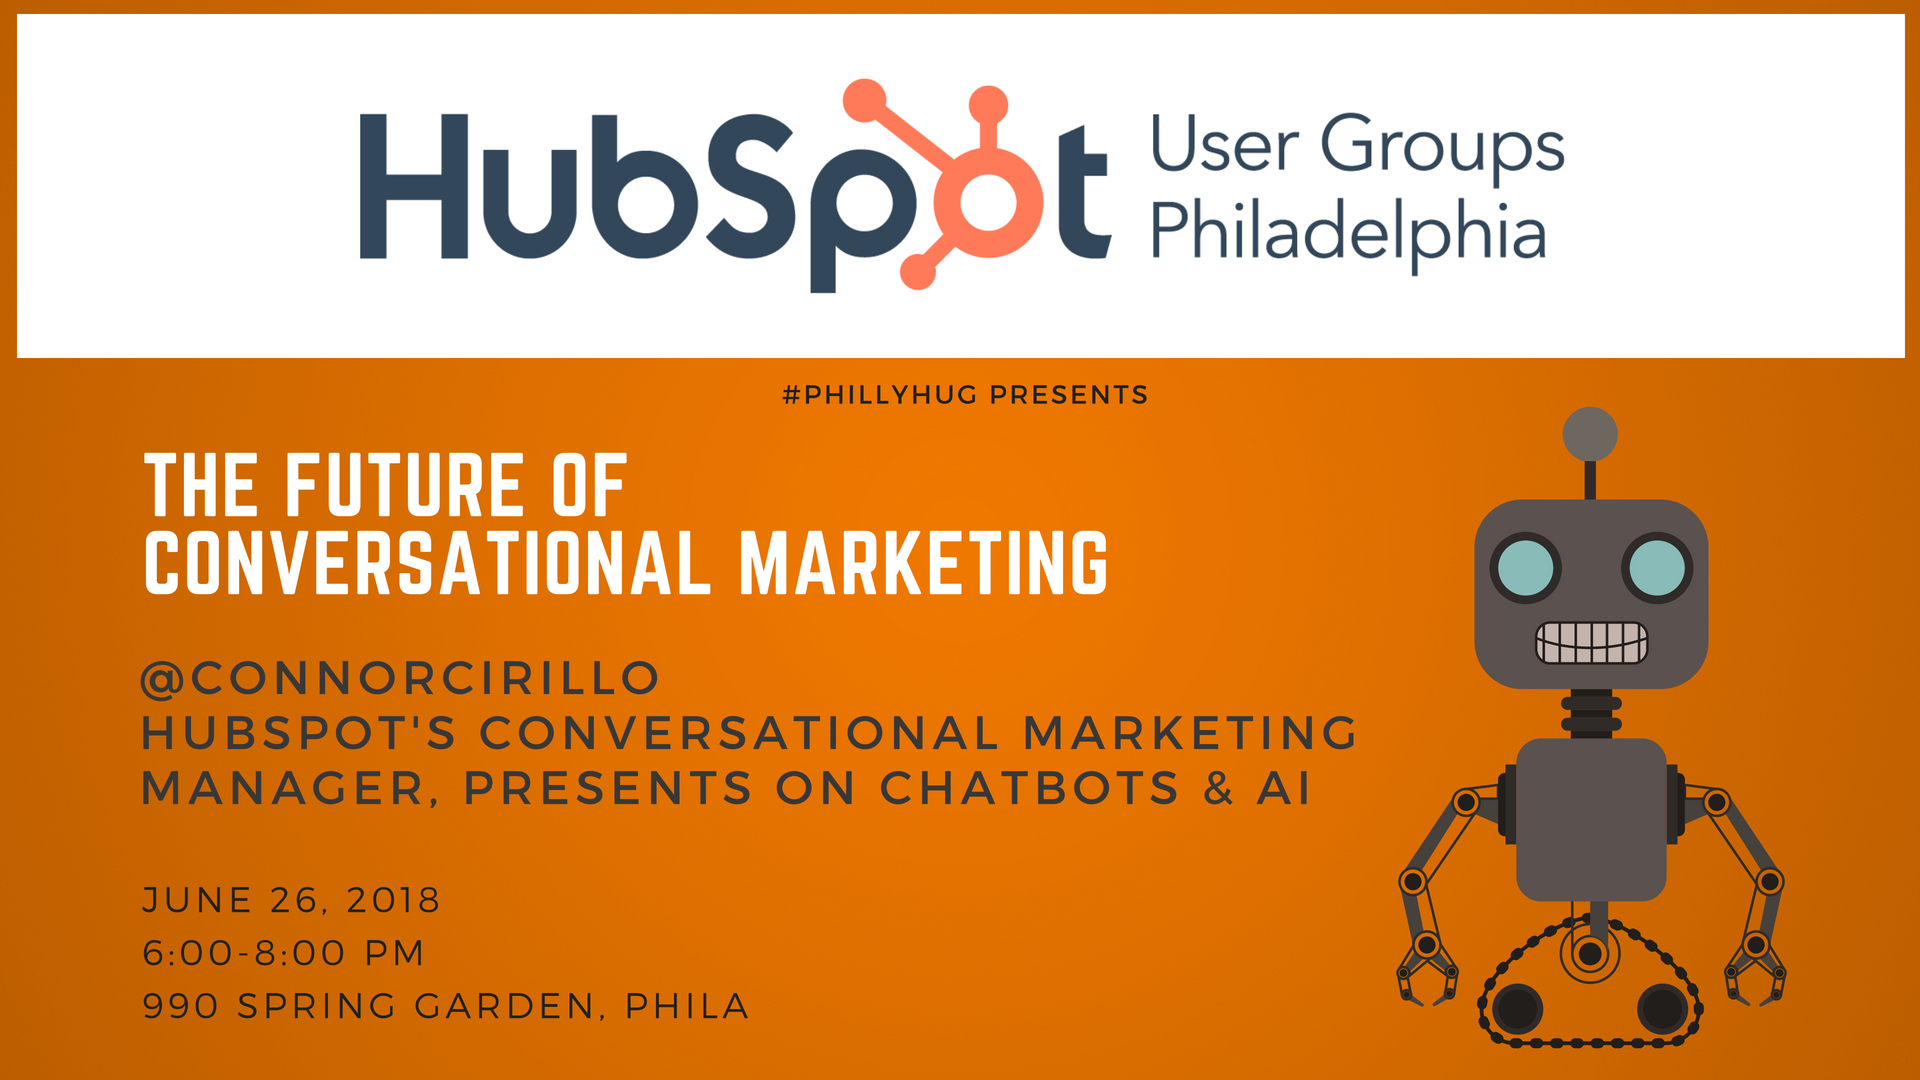 Philly HUG: The Future of Conversational Marketing with chatbots and AI